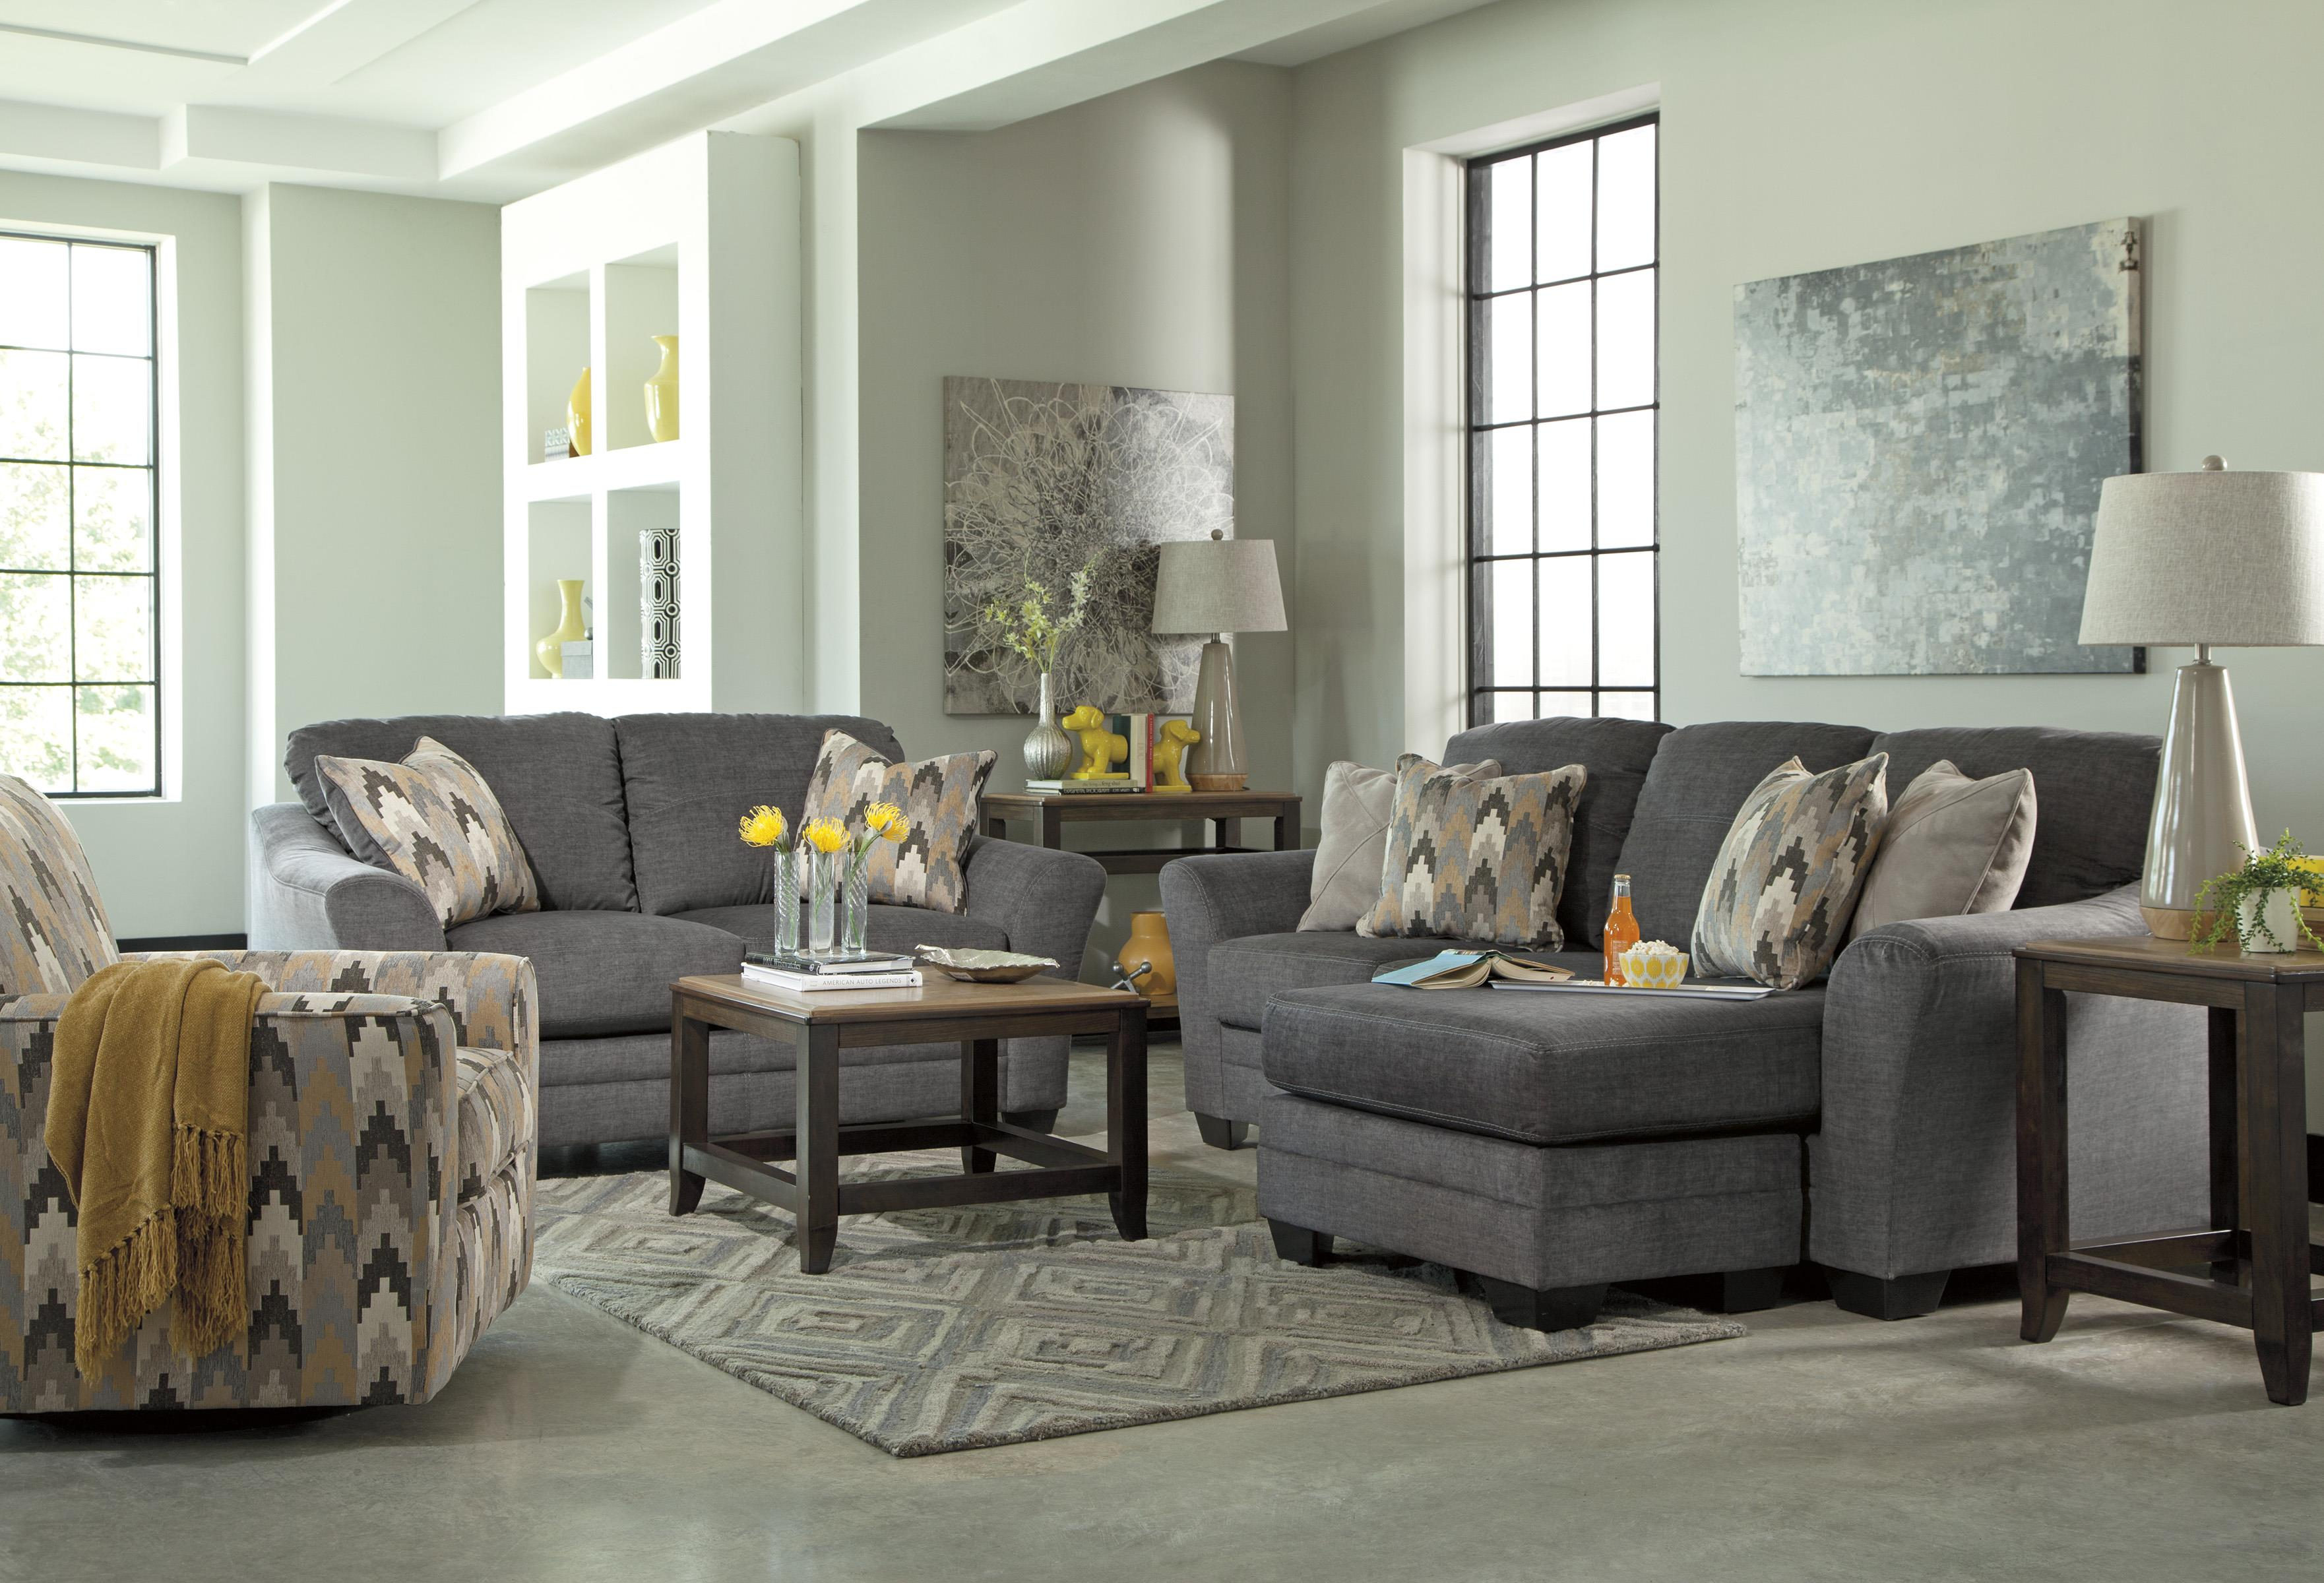 Marlo Furniture Living Room Benchcraft Braxlin Contemporary Sofa Chaise In Gray Fabric Marlo